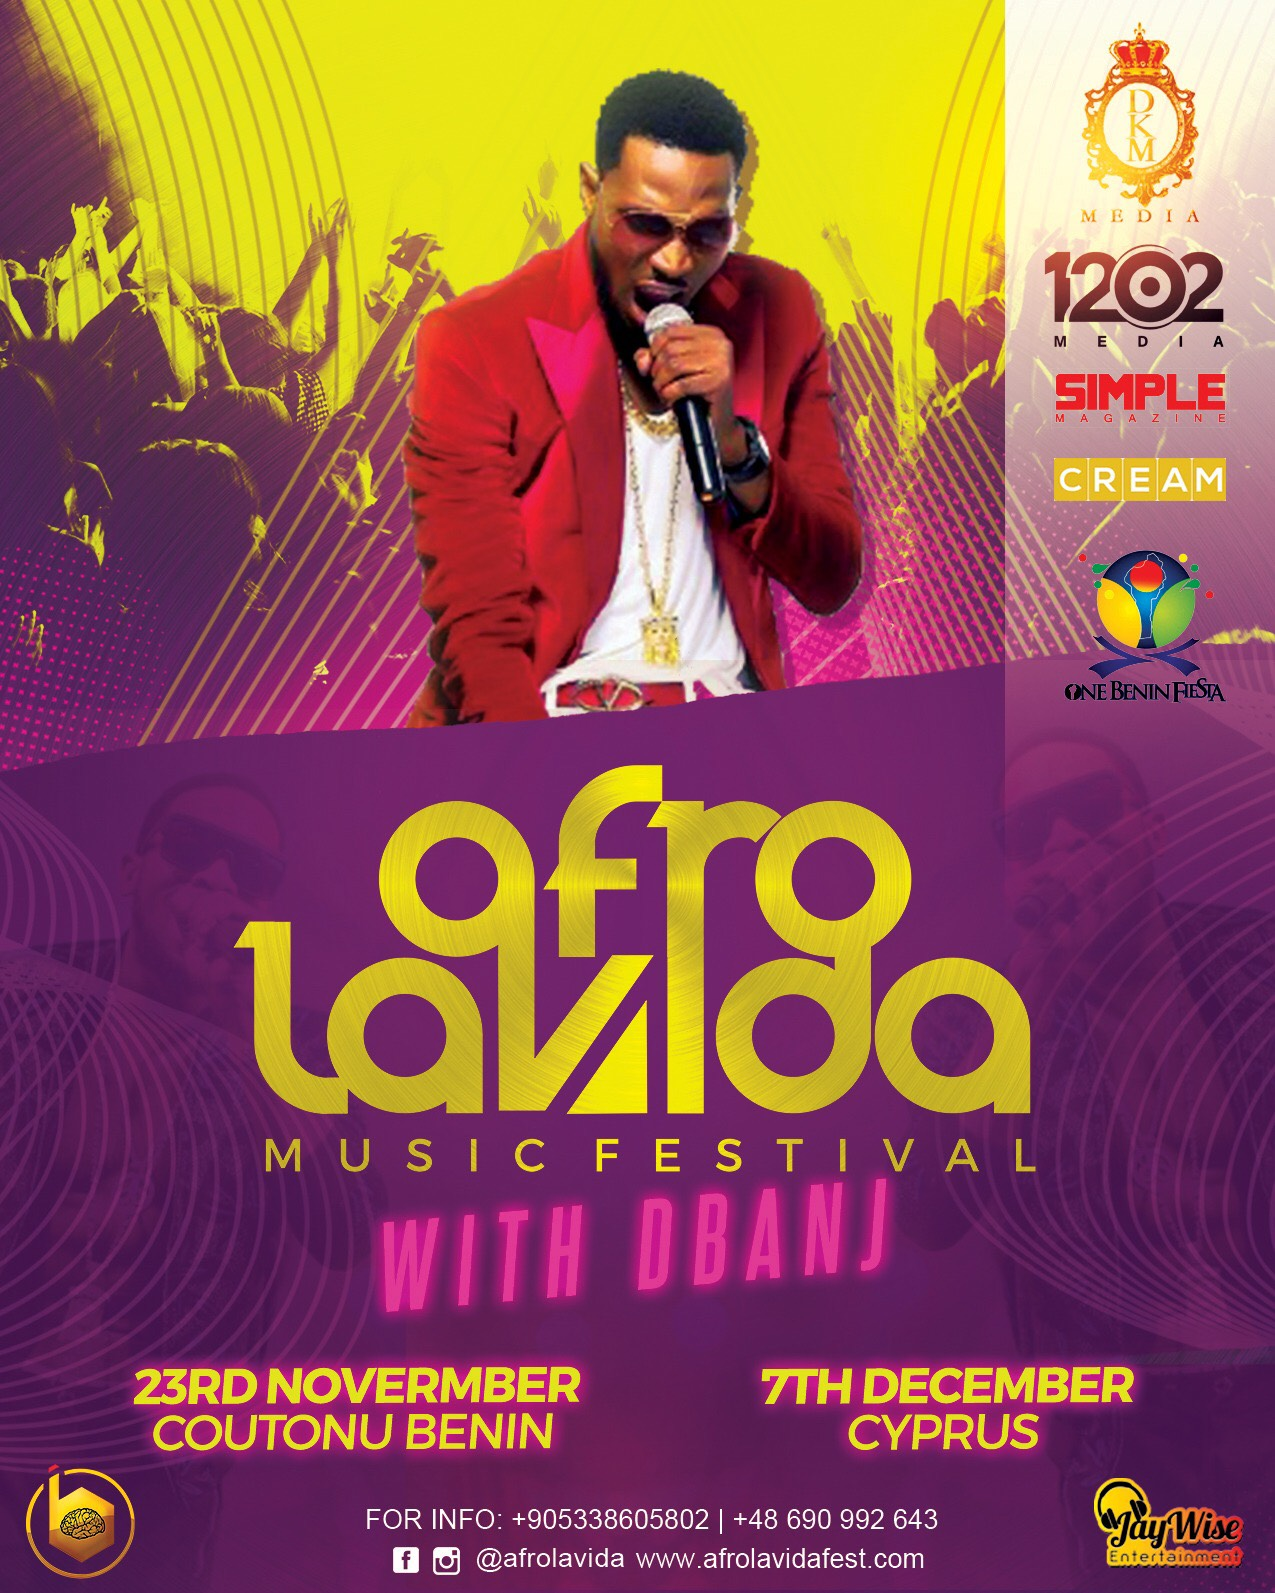 D'BANJ GOES ON TOUR WITH AFROLAVIDA MUSIC FESTIVAL